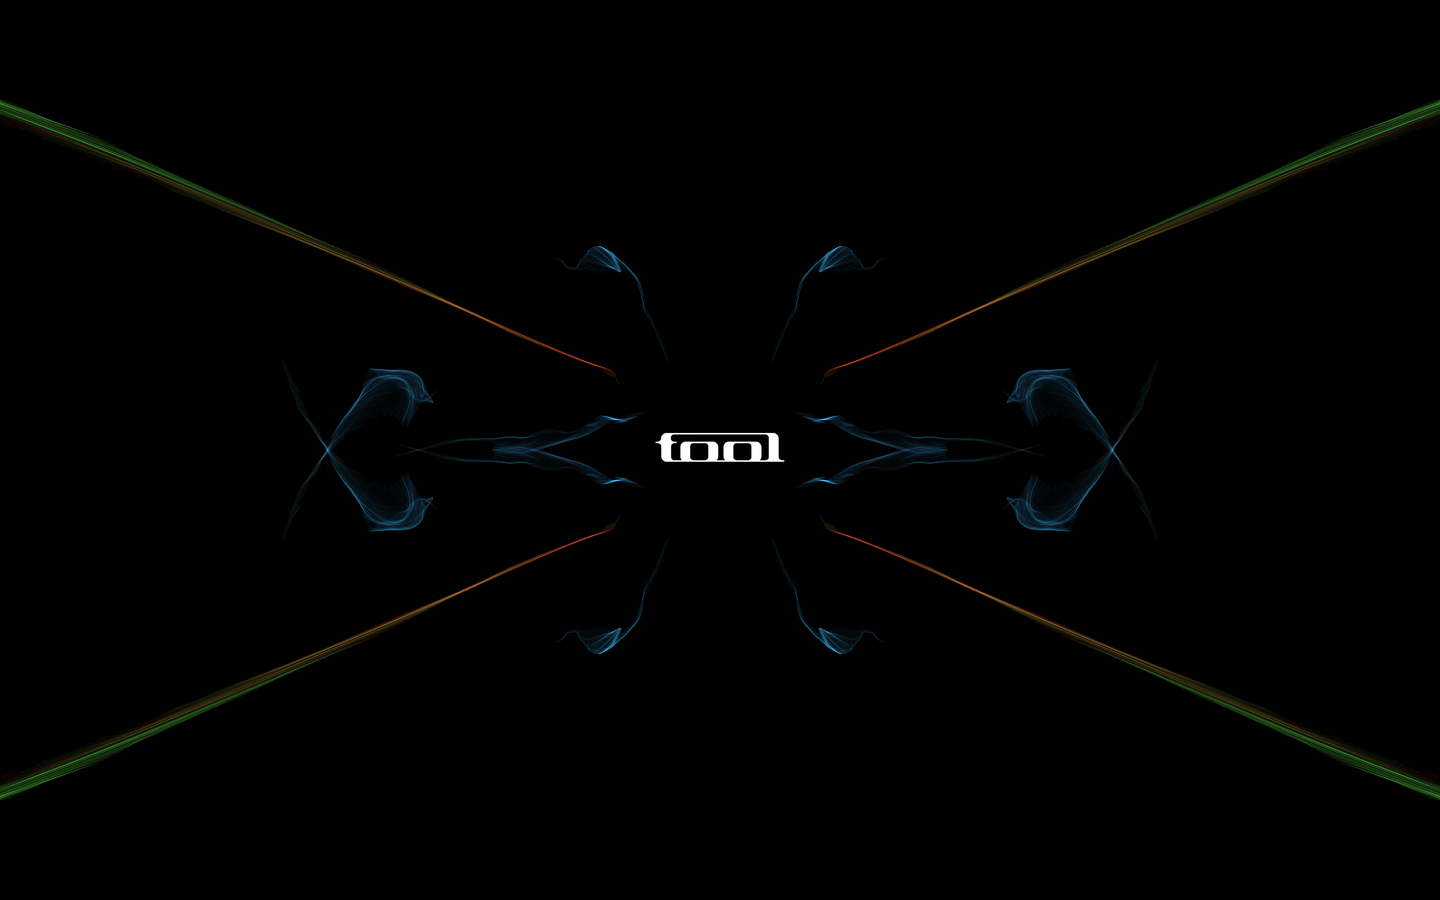 tool computer wallpapers desktop backgrounds 1440x900